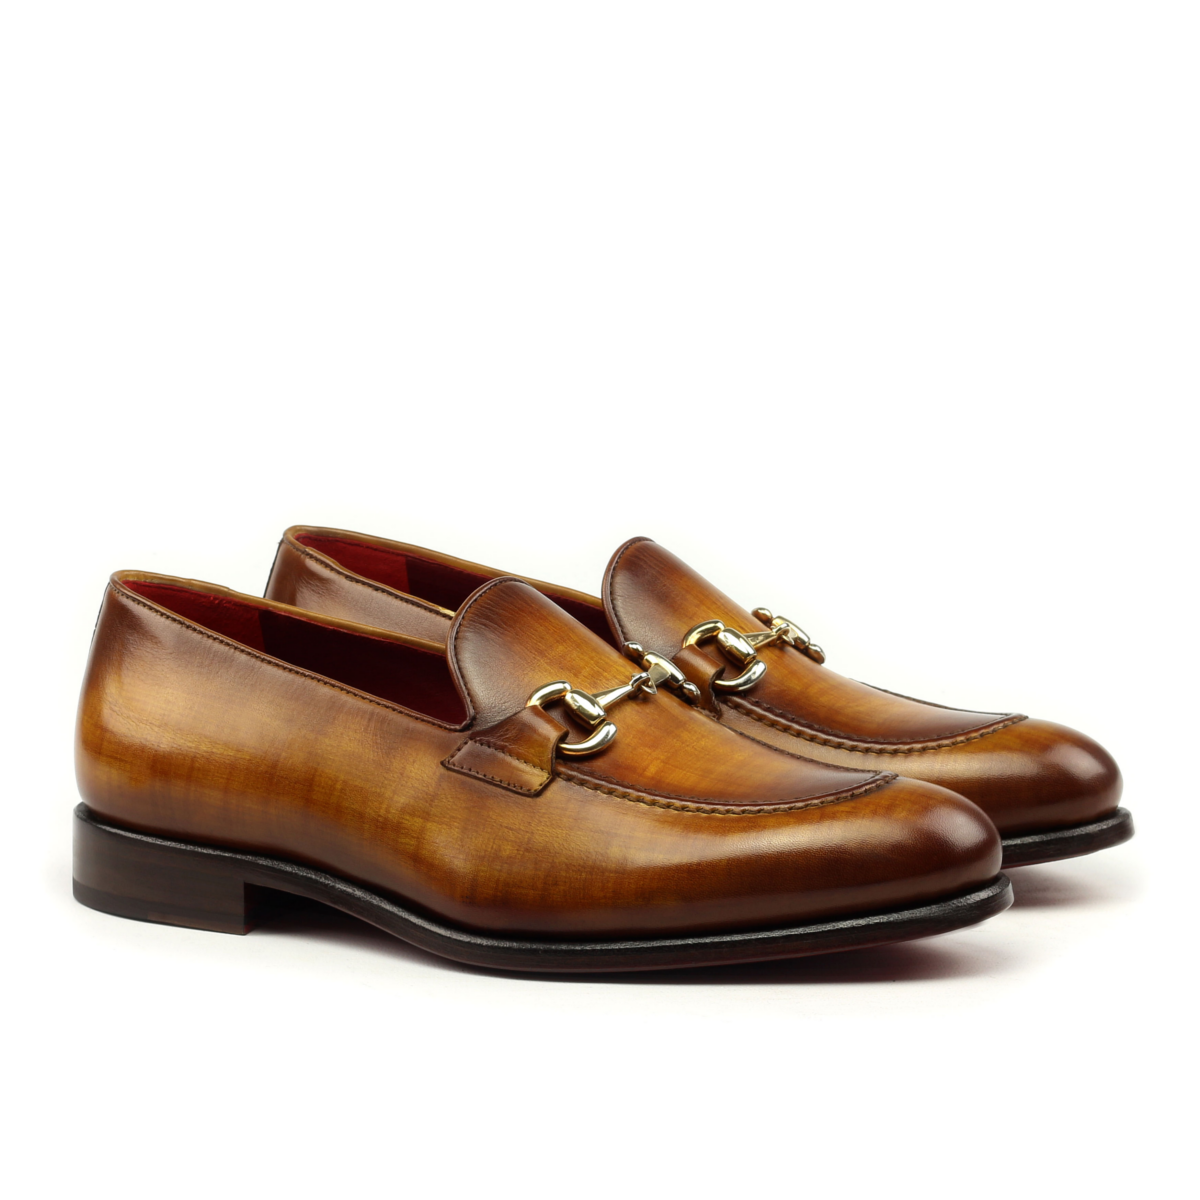 193509f6ced0a Gucci loafer in crust patina - Cambrillón Bespoke Leather